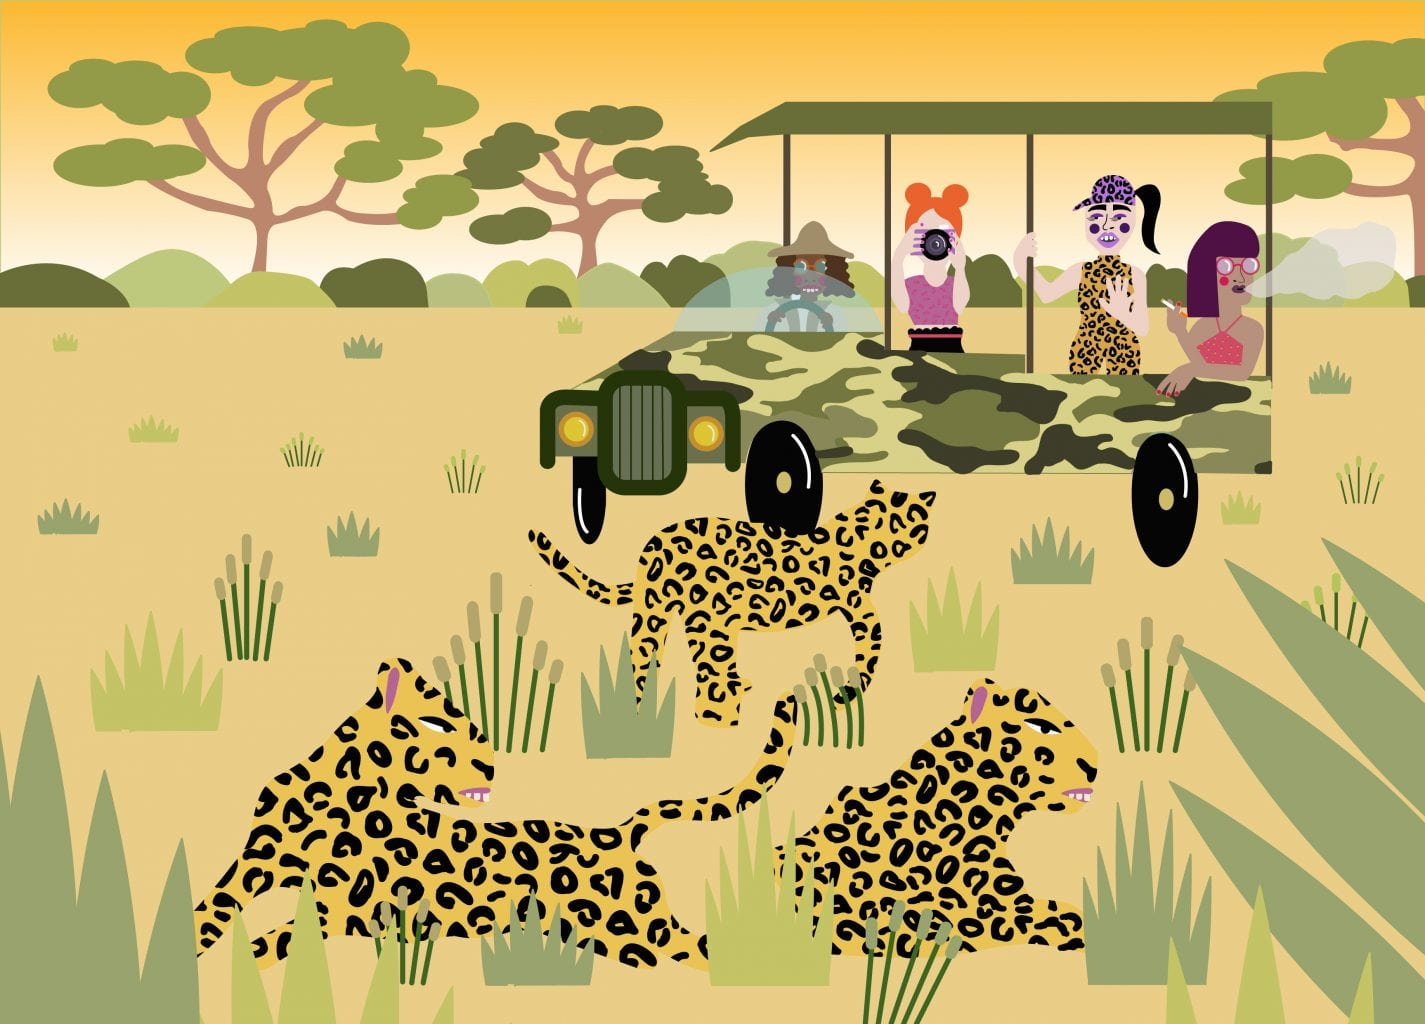 <p>'Safari' by Katie Brookes</p>